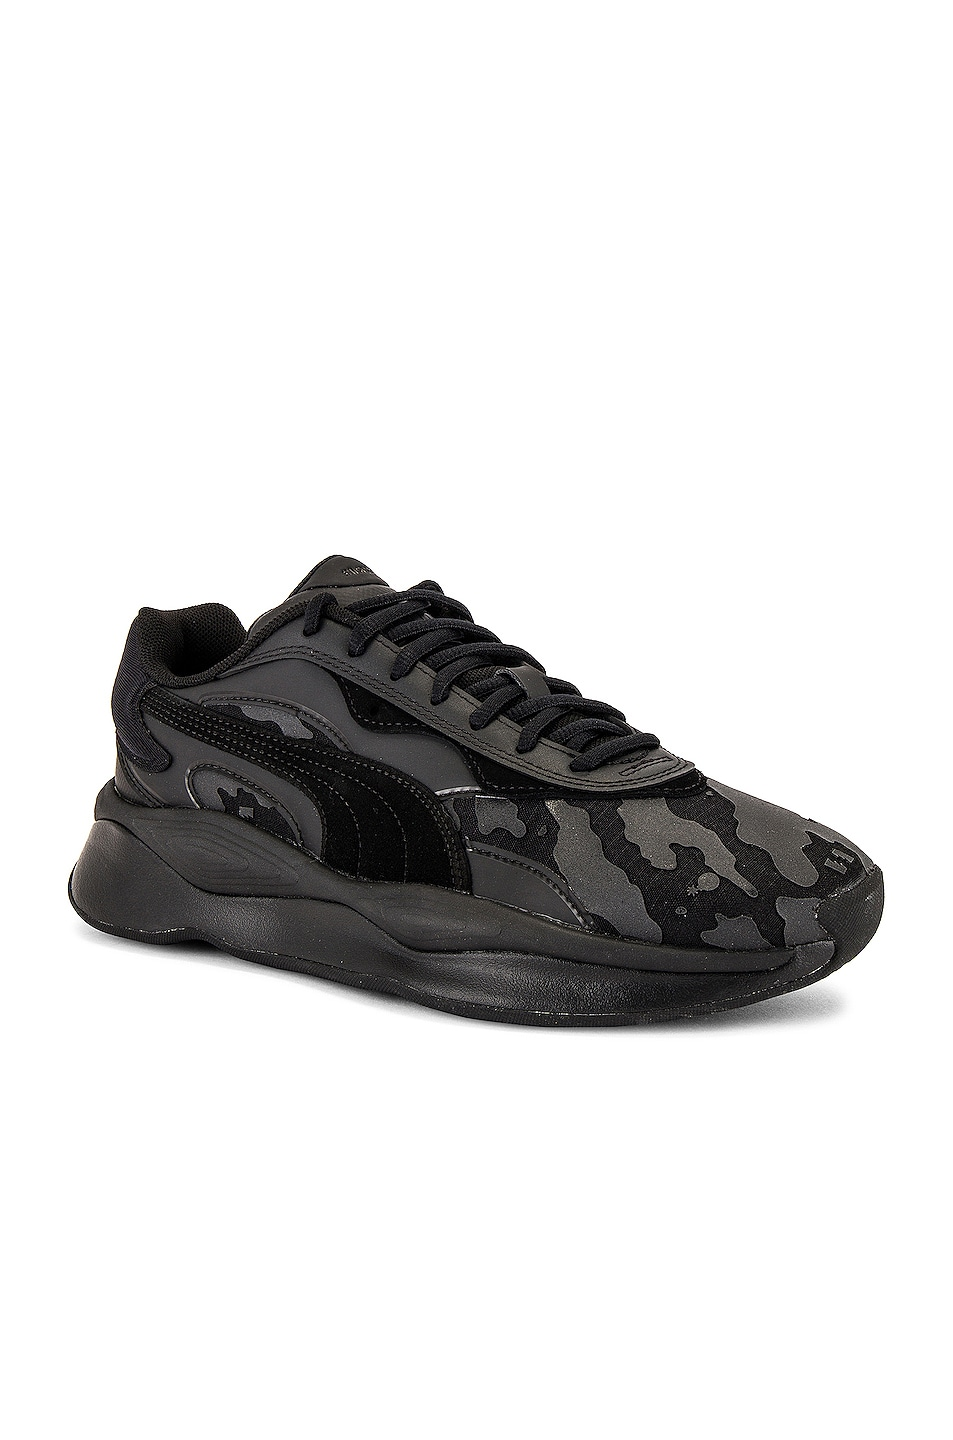 Image 1 of Puma Select x The Hundreds Pure in Black